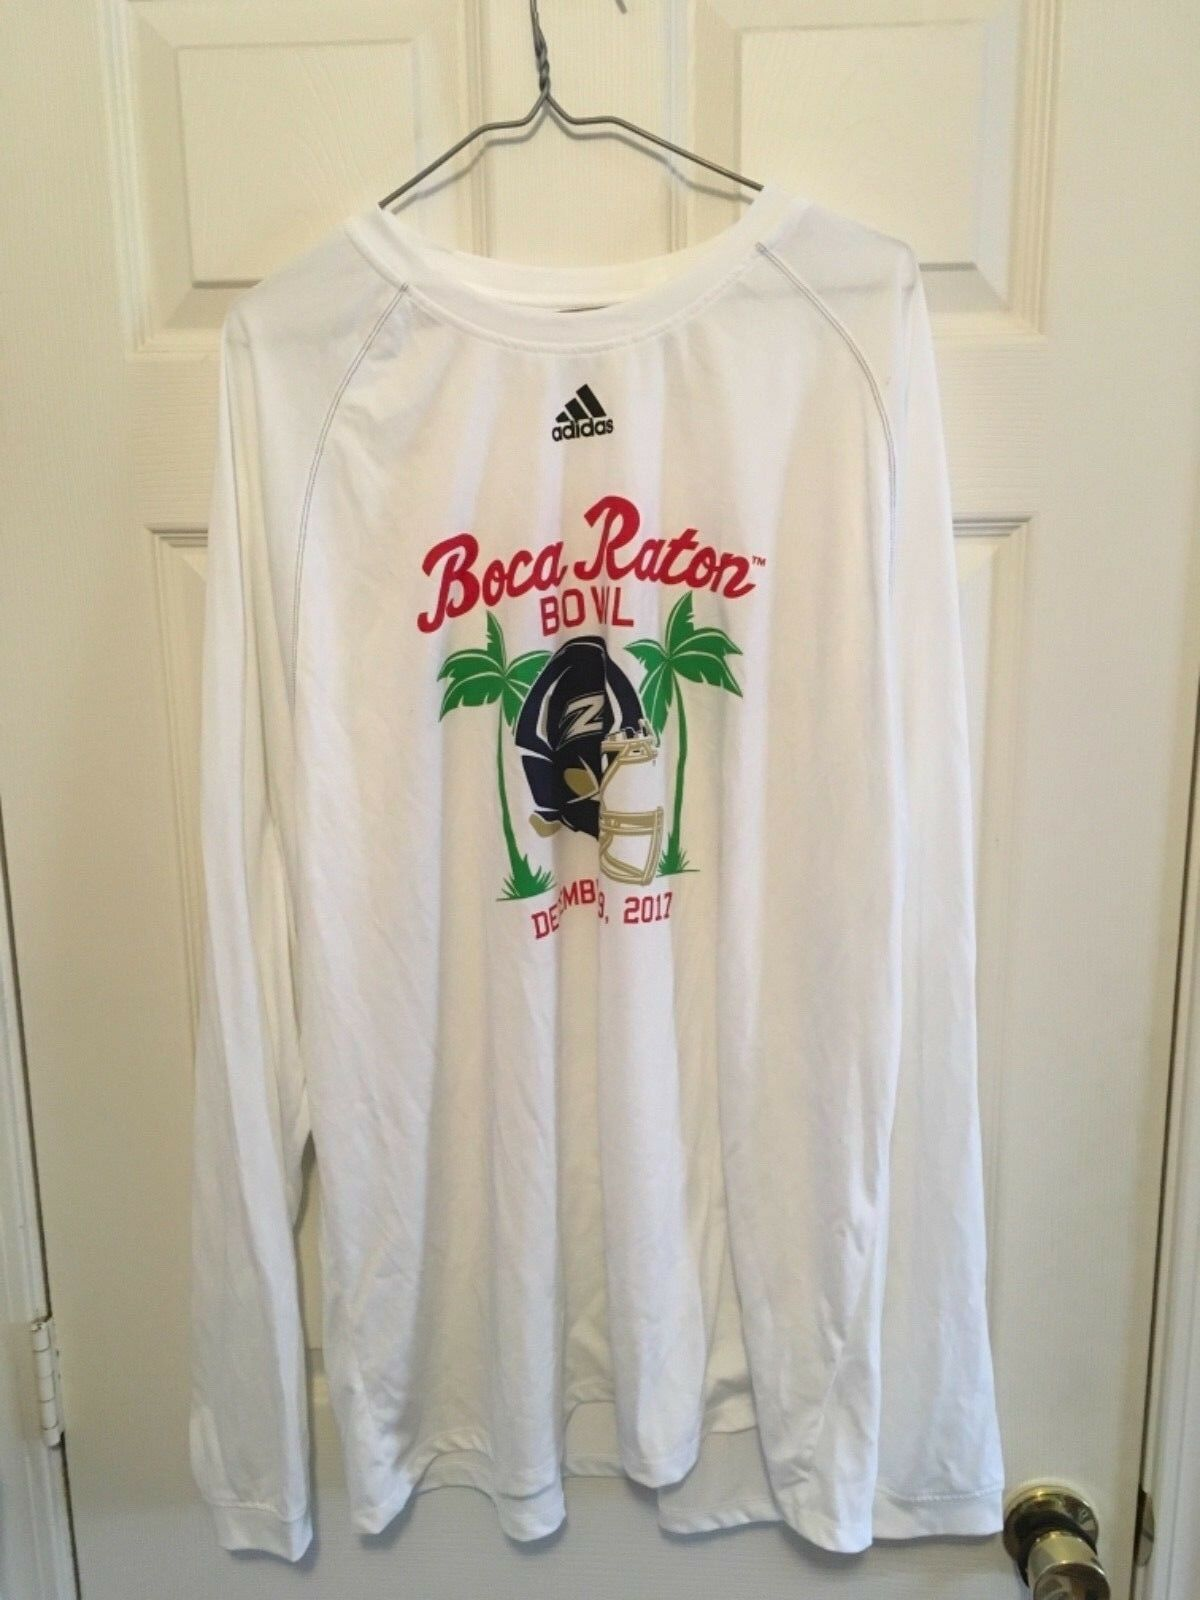 Adidas Team Issued White Long Sleeve T-shirt - New - Boca Raton Bowl - Akron